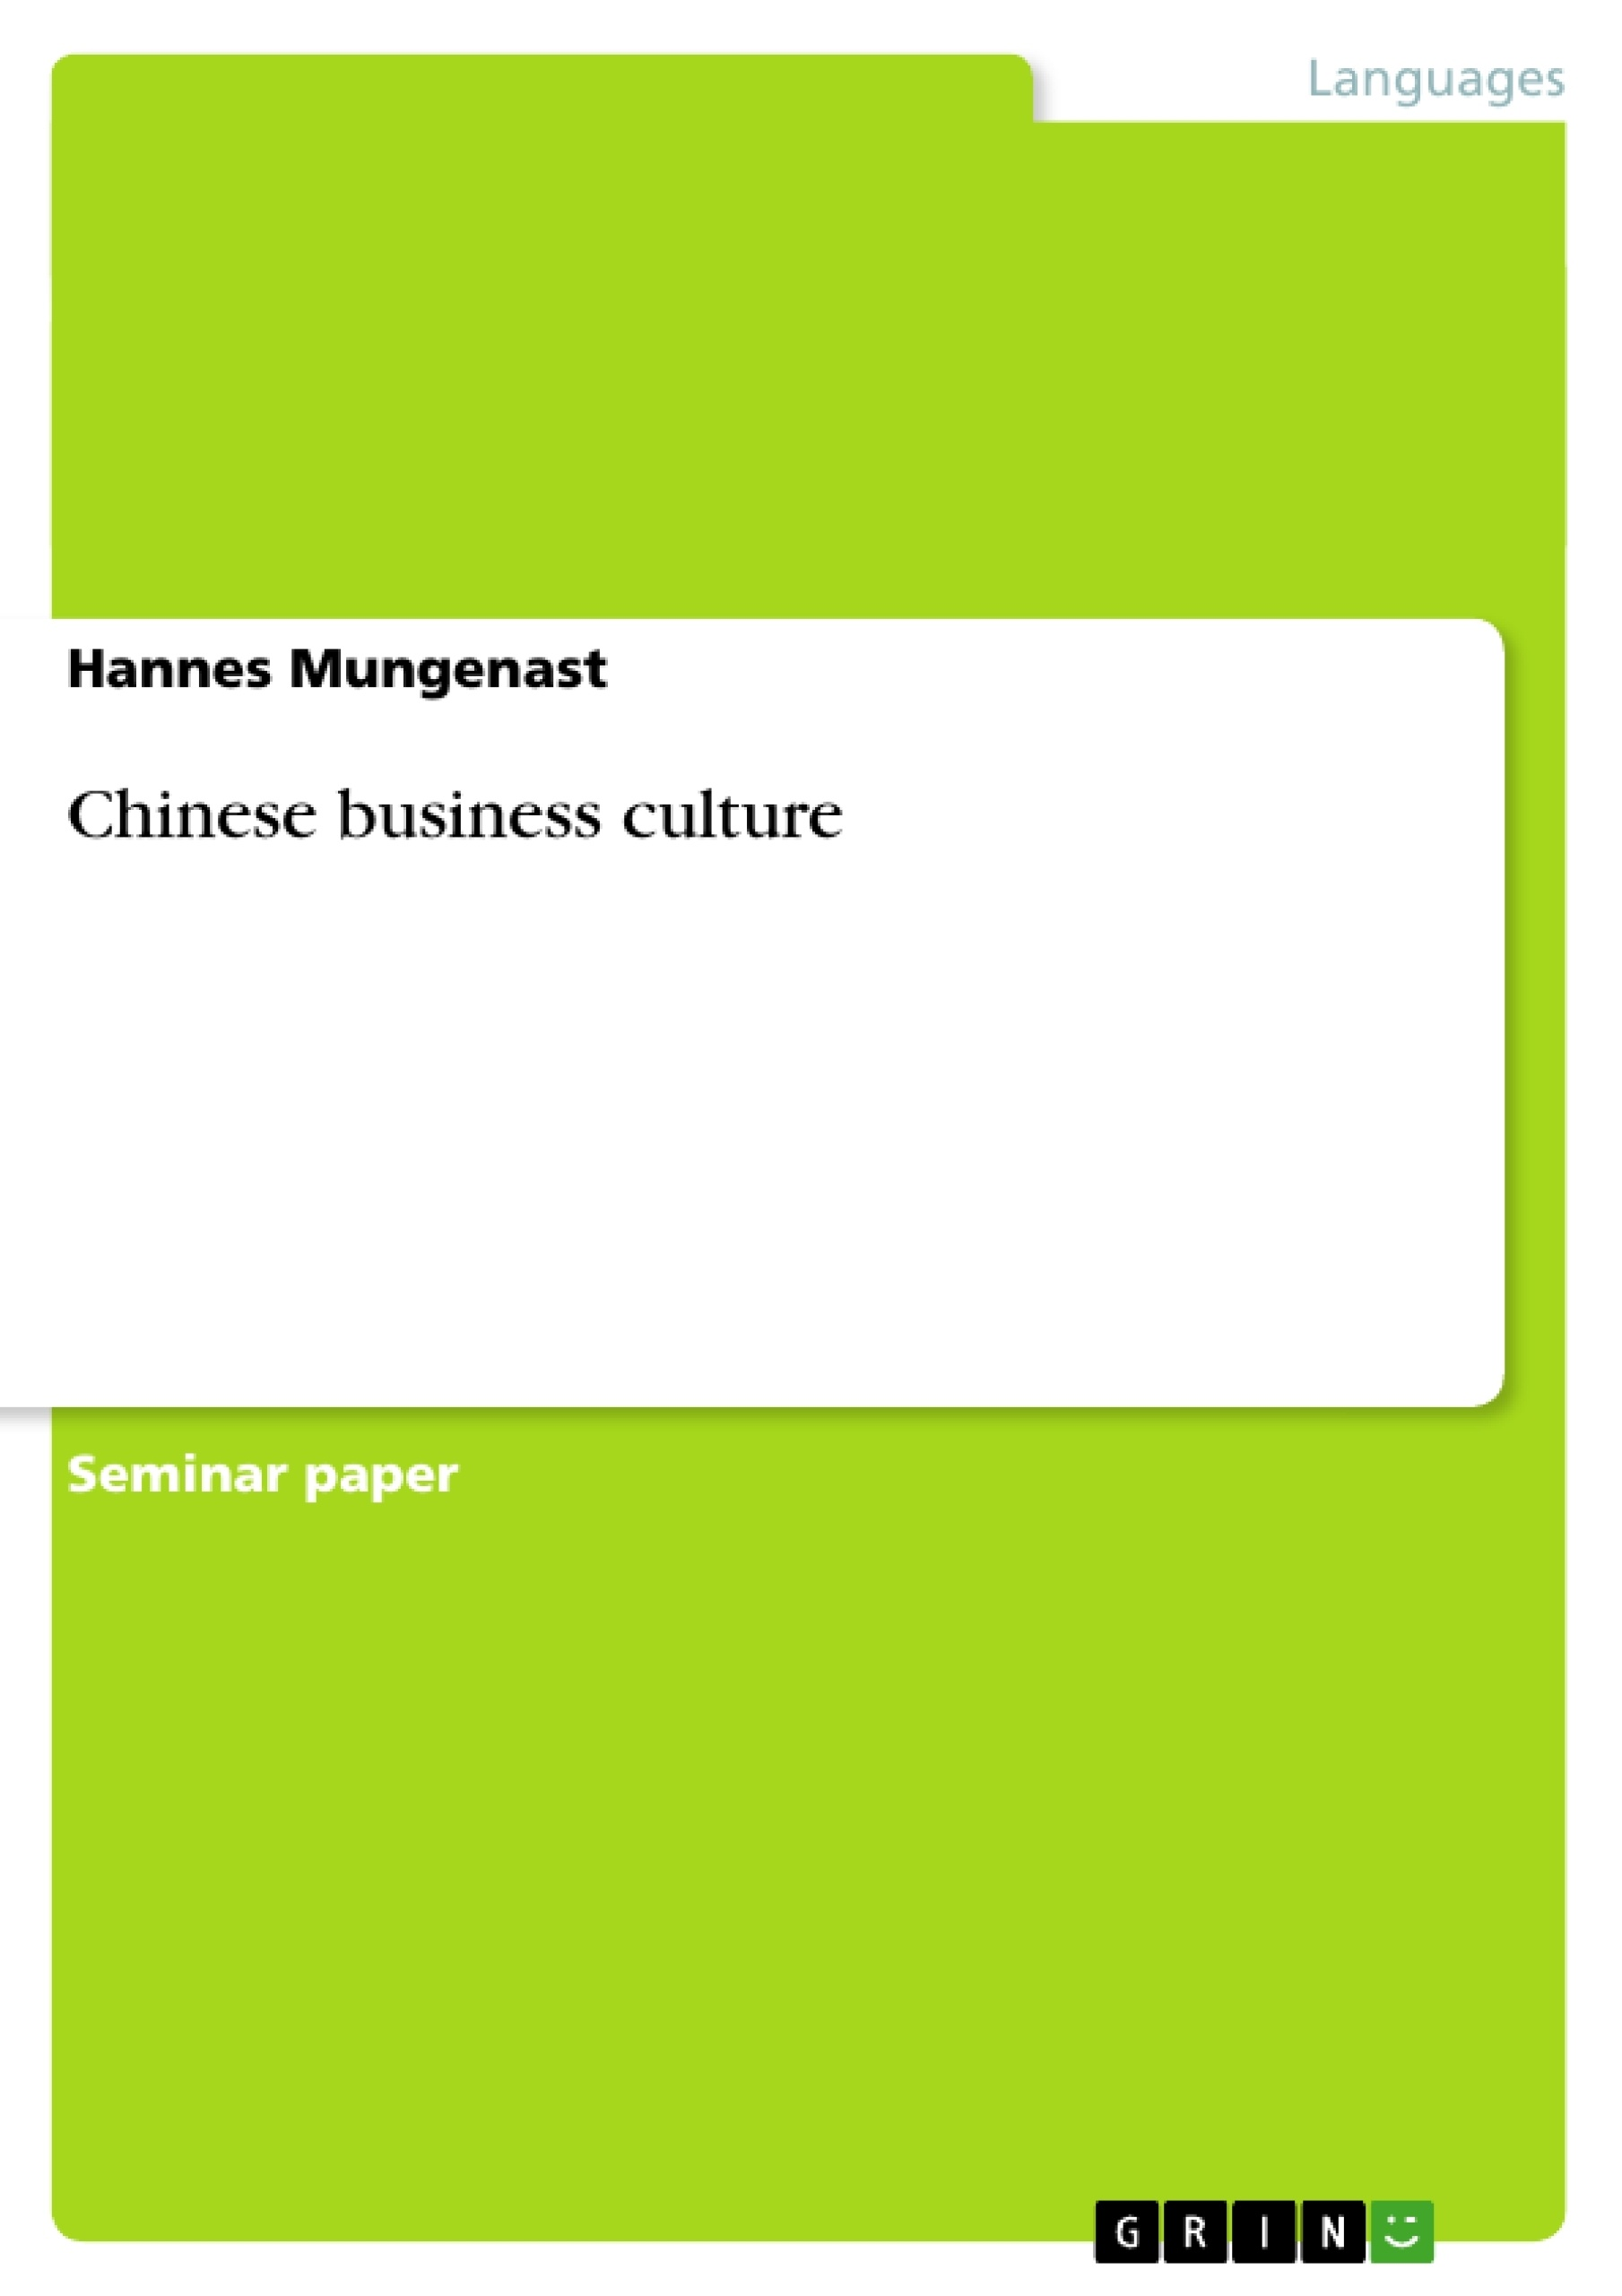 Title: Chinese business culture